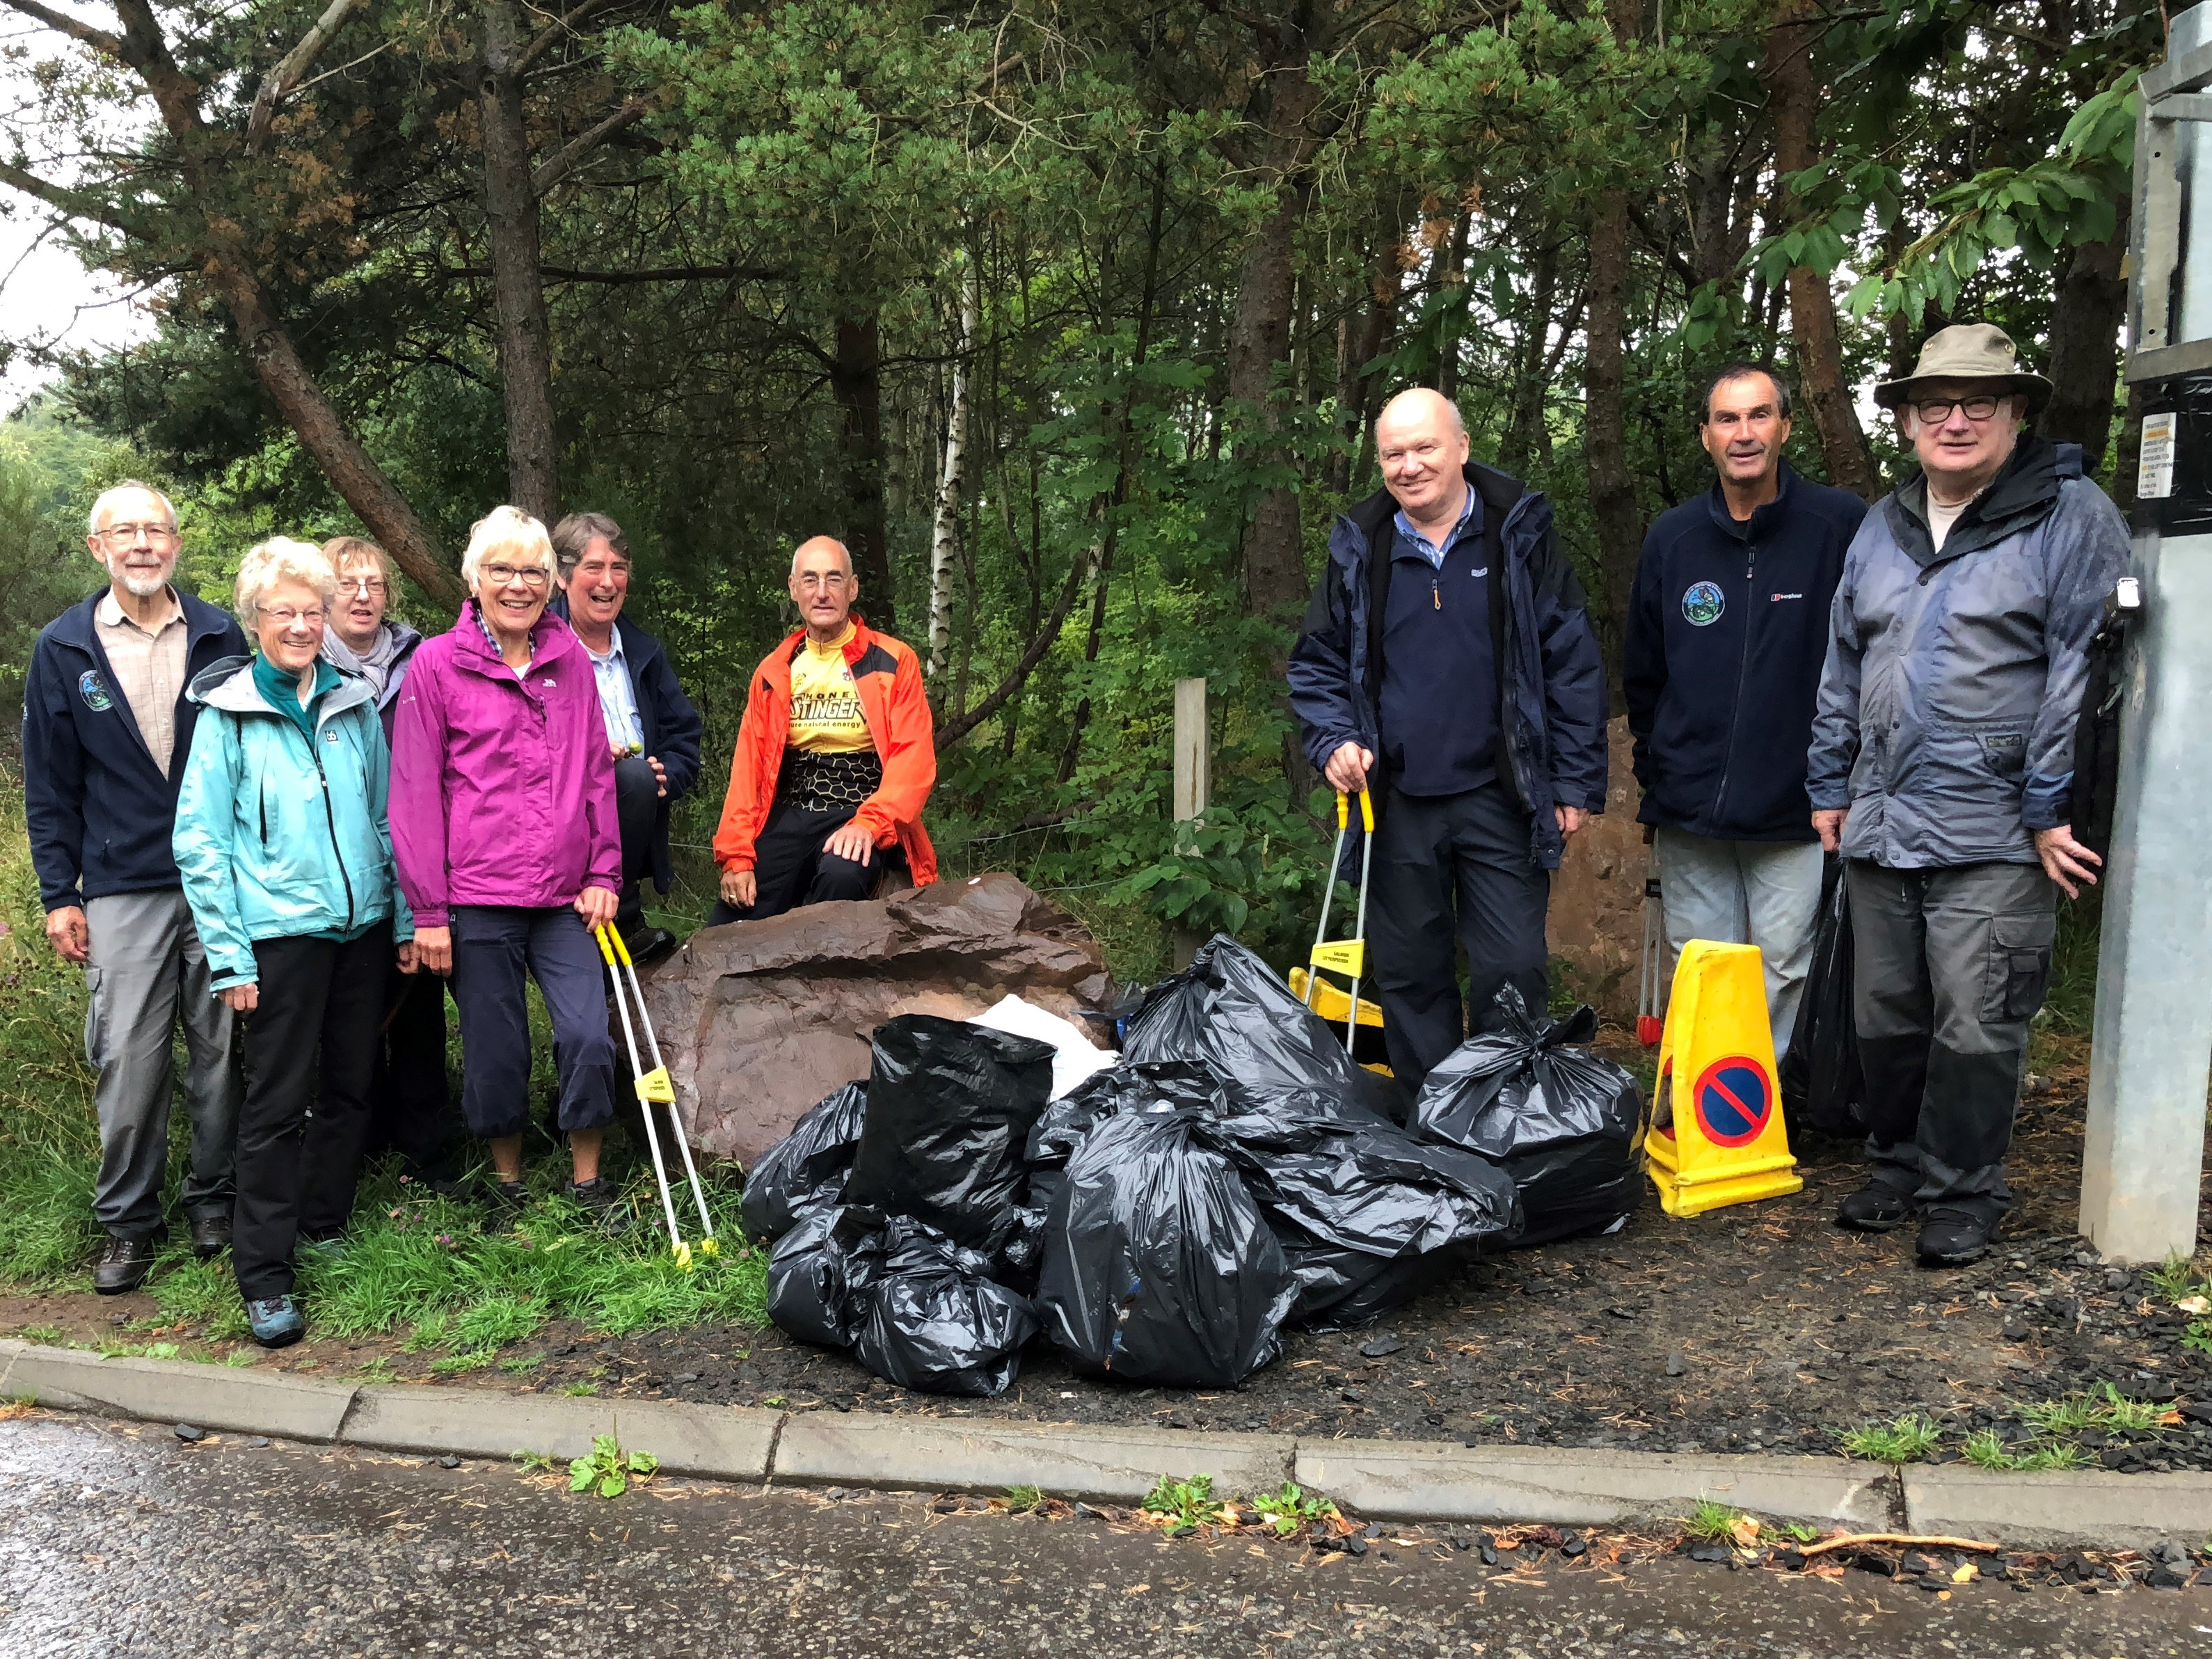 Friends of the Pentlands litter pick